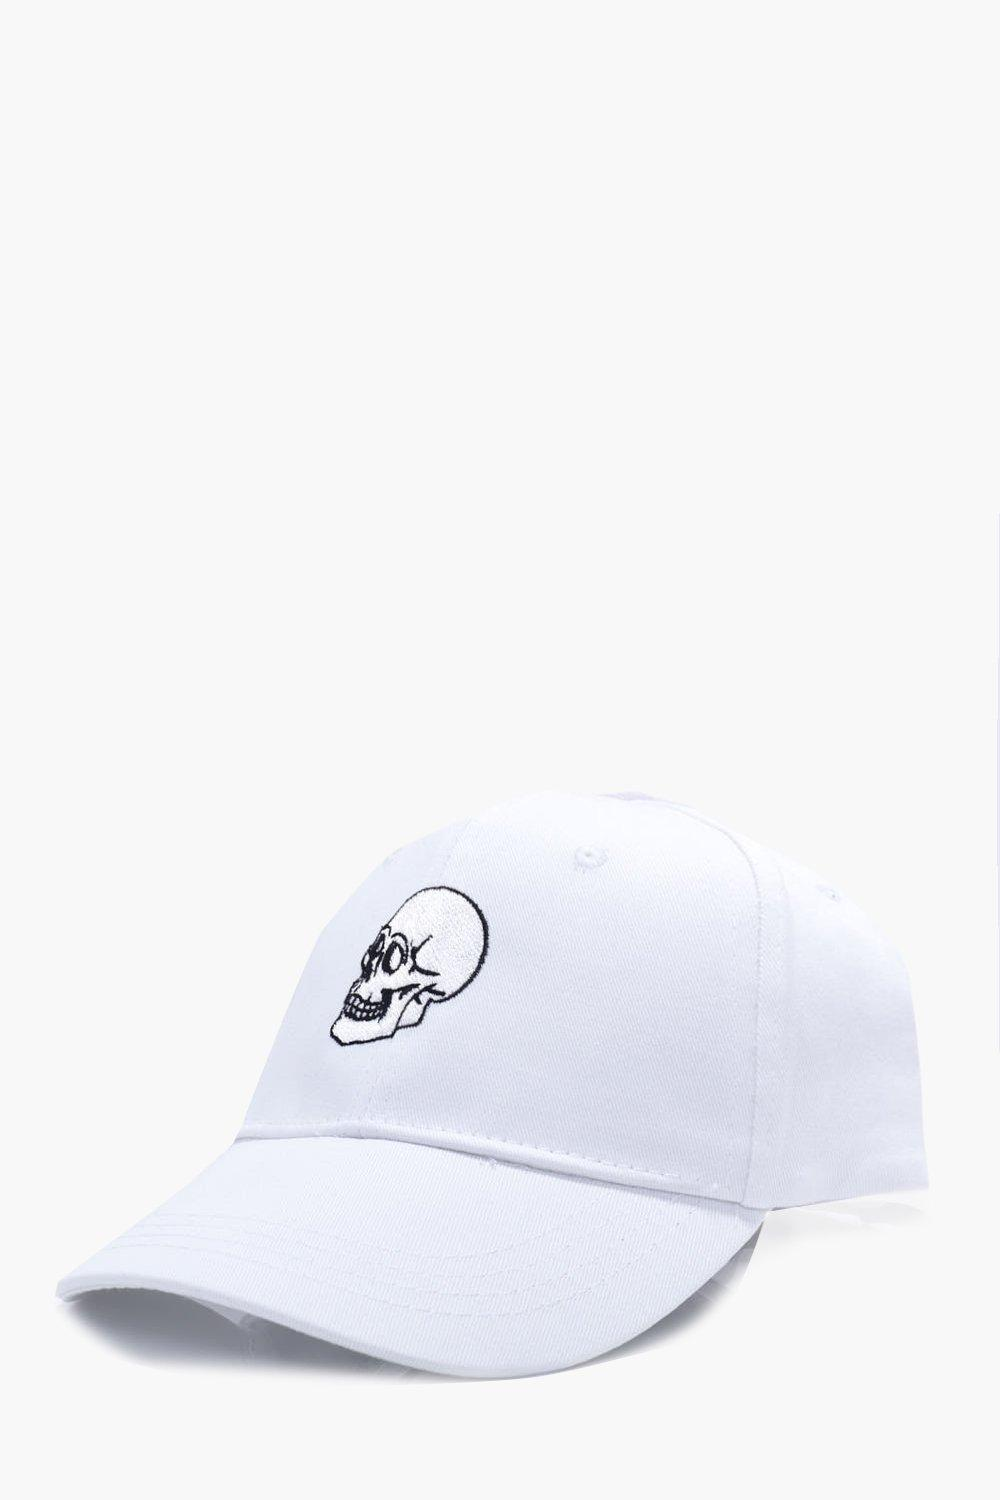 Embroidered Snapback Cap - white - Skull Embroider